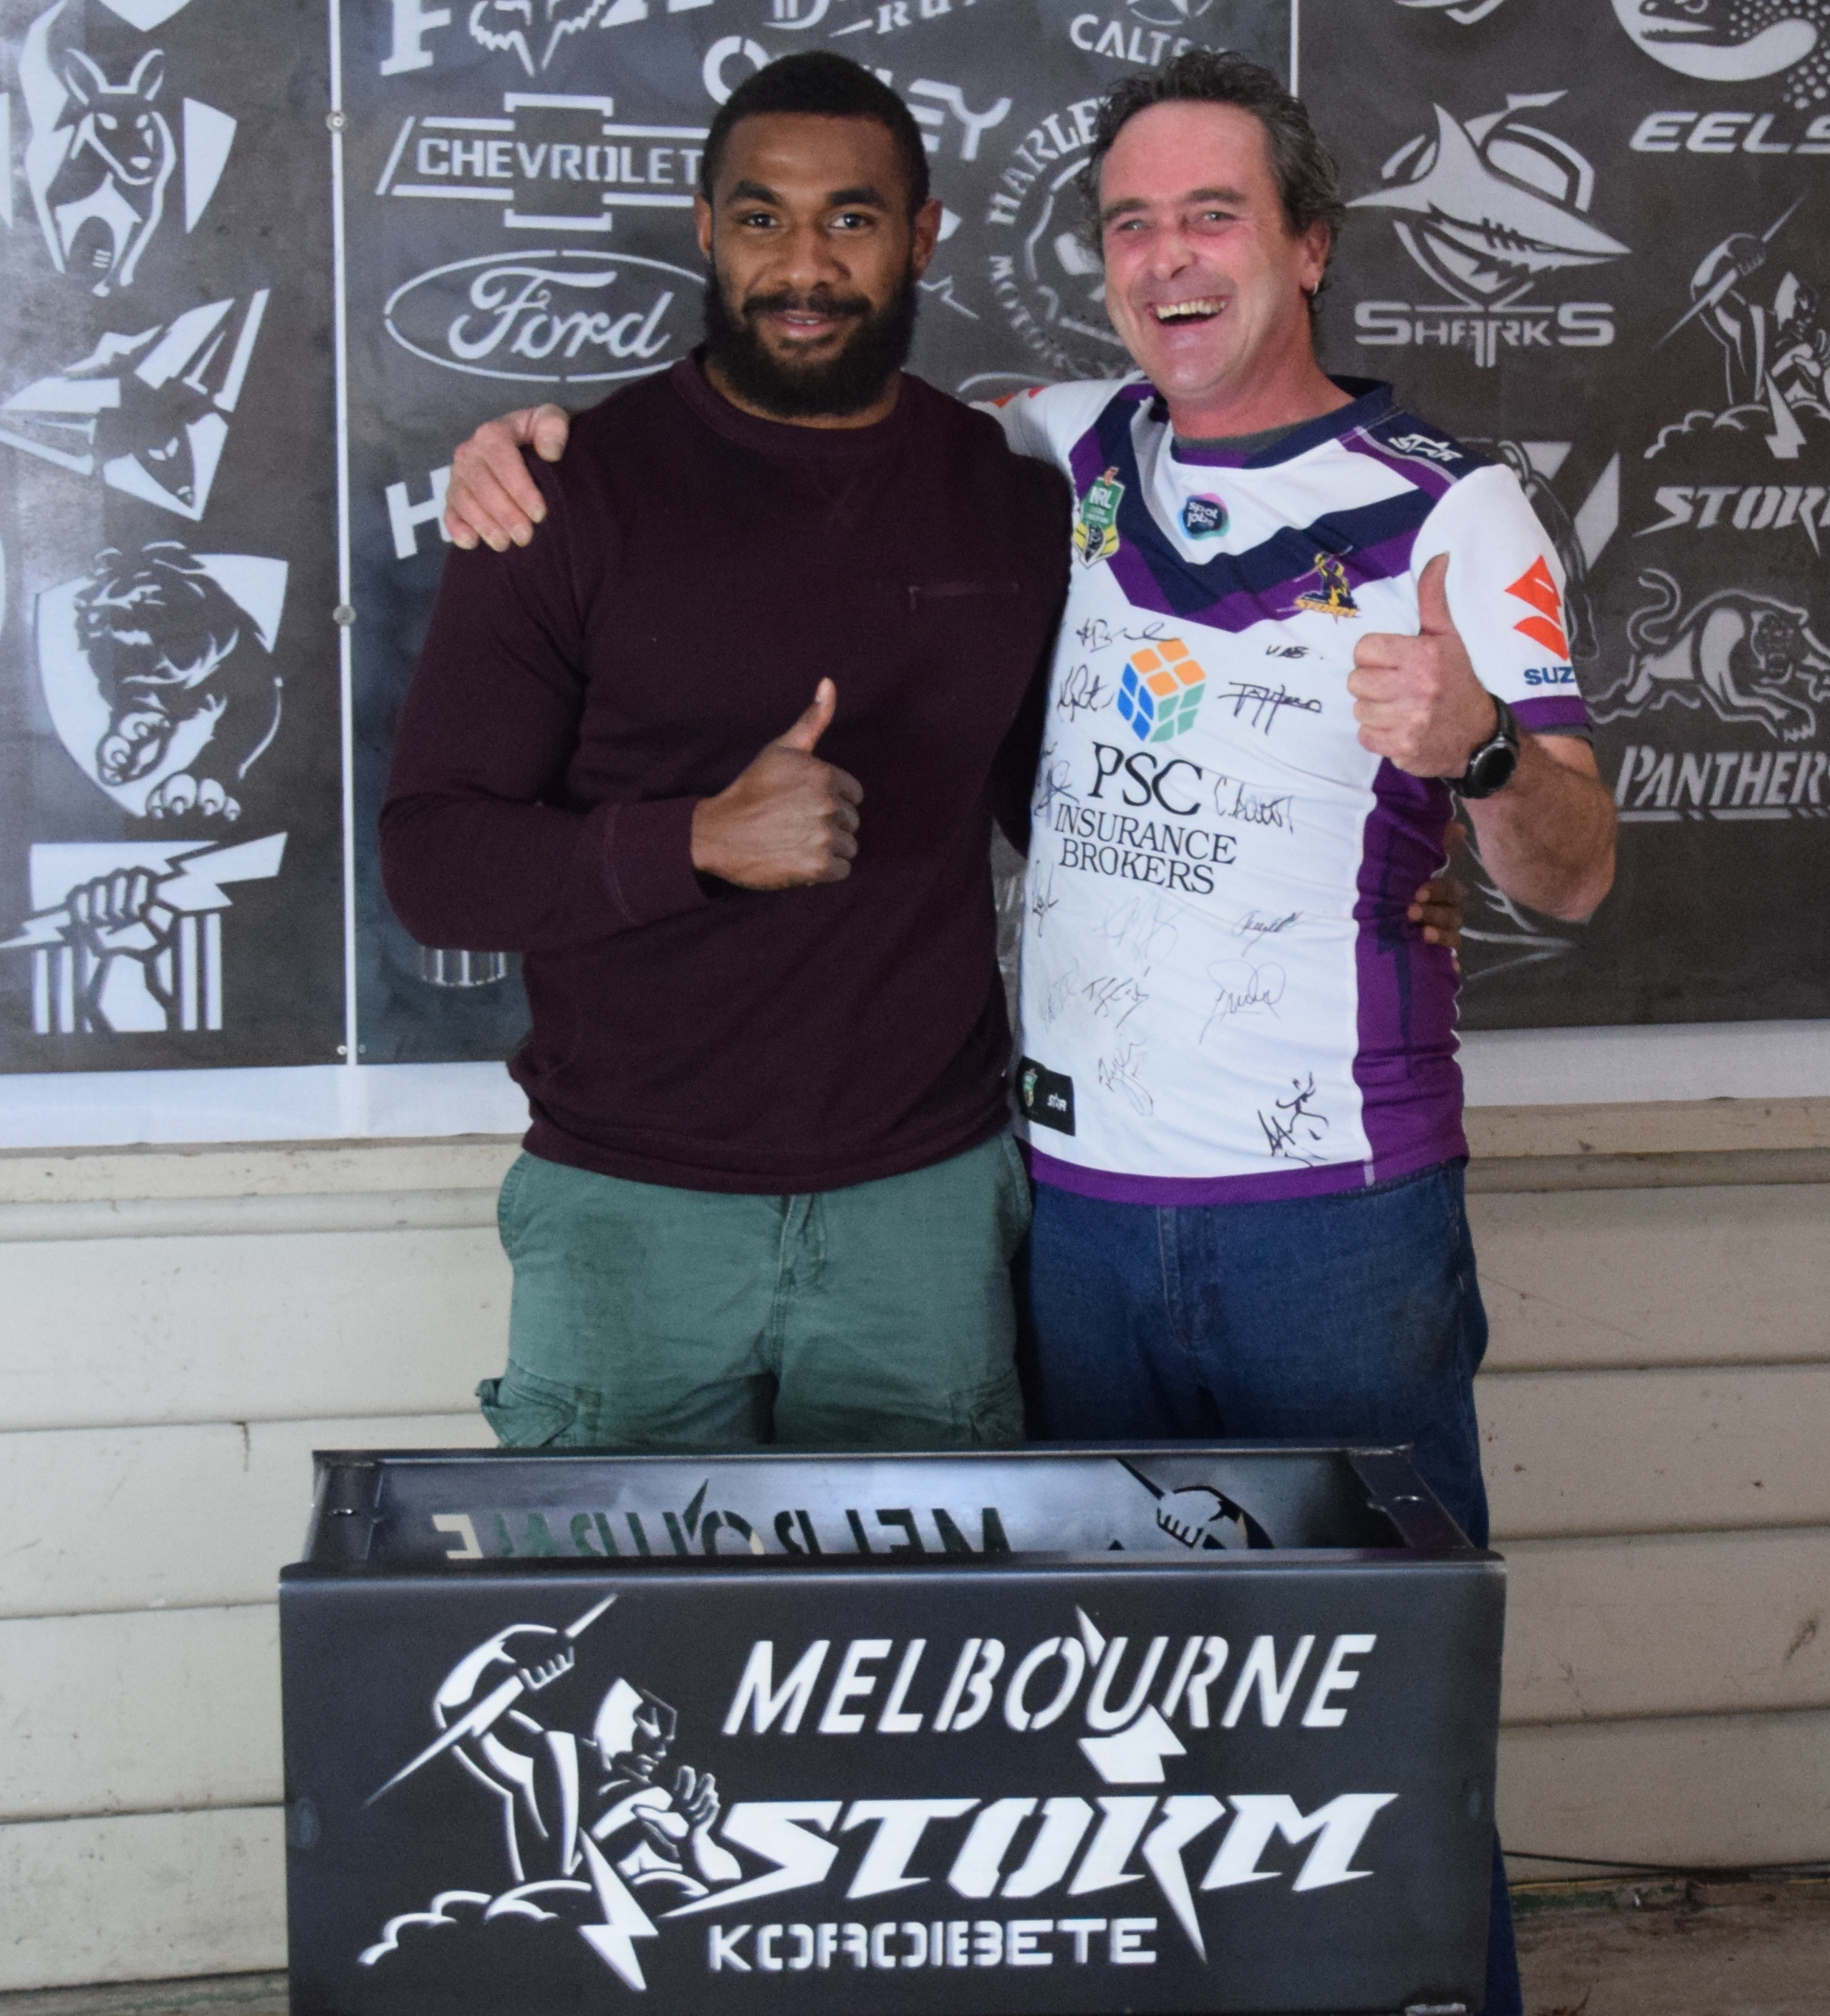 Koroibete from Melbourne Storm and Al